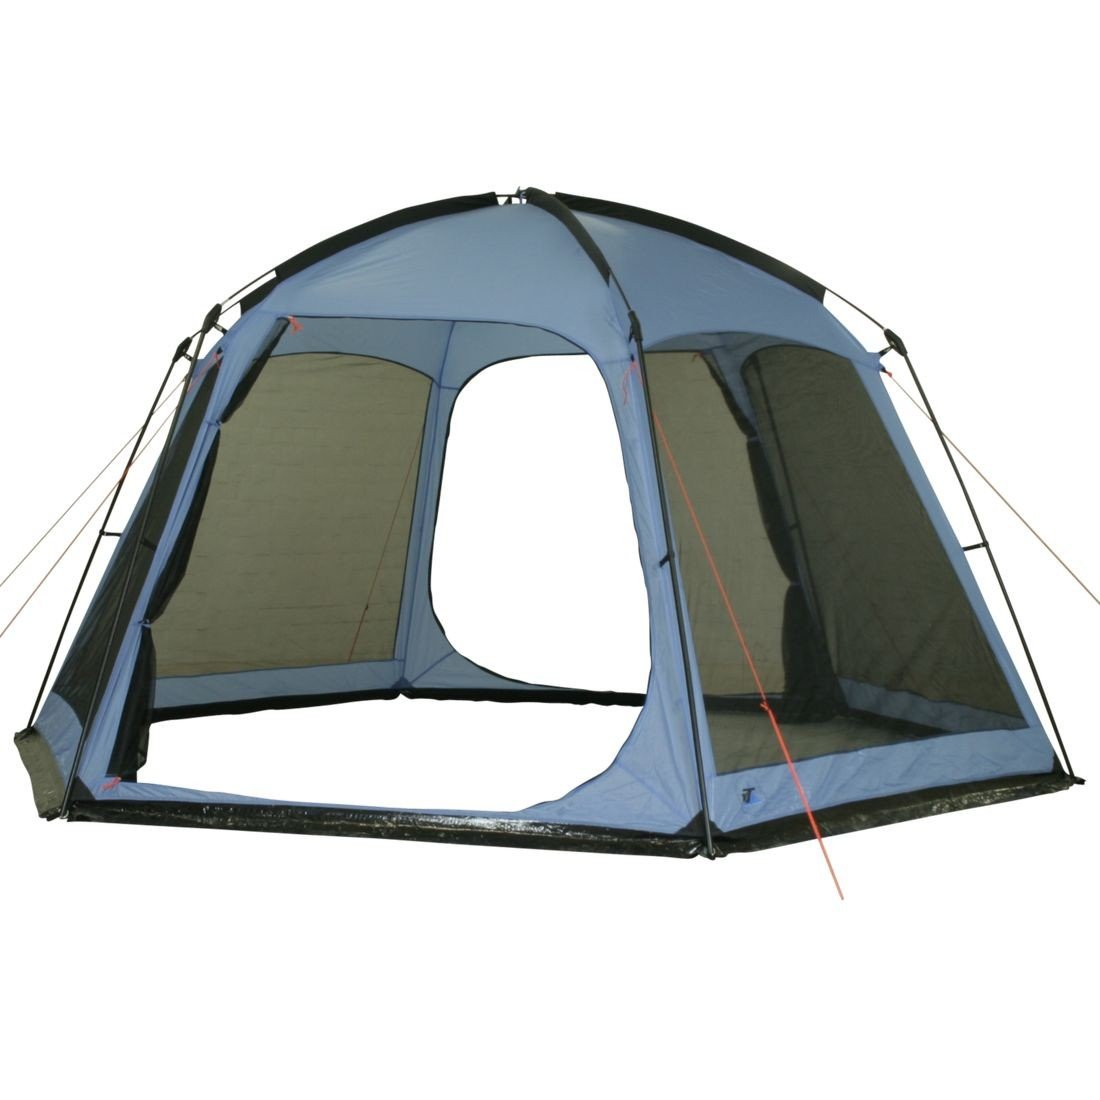 10T Outdoor Equipment Pavillon Kivalina, Blau, 761503